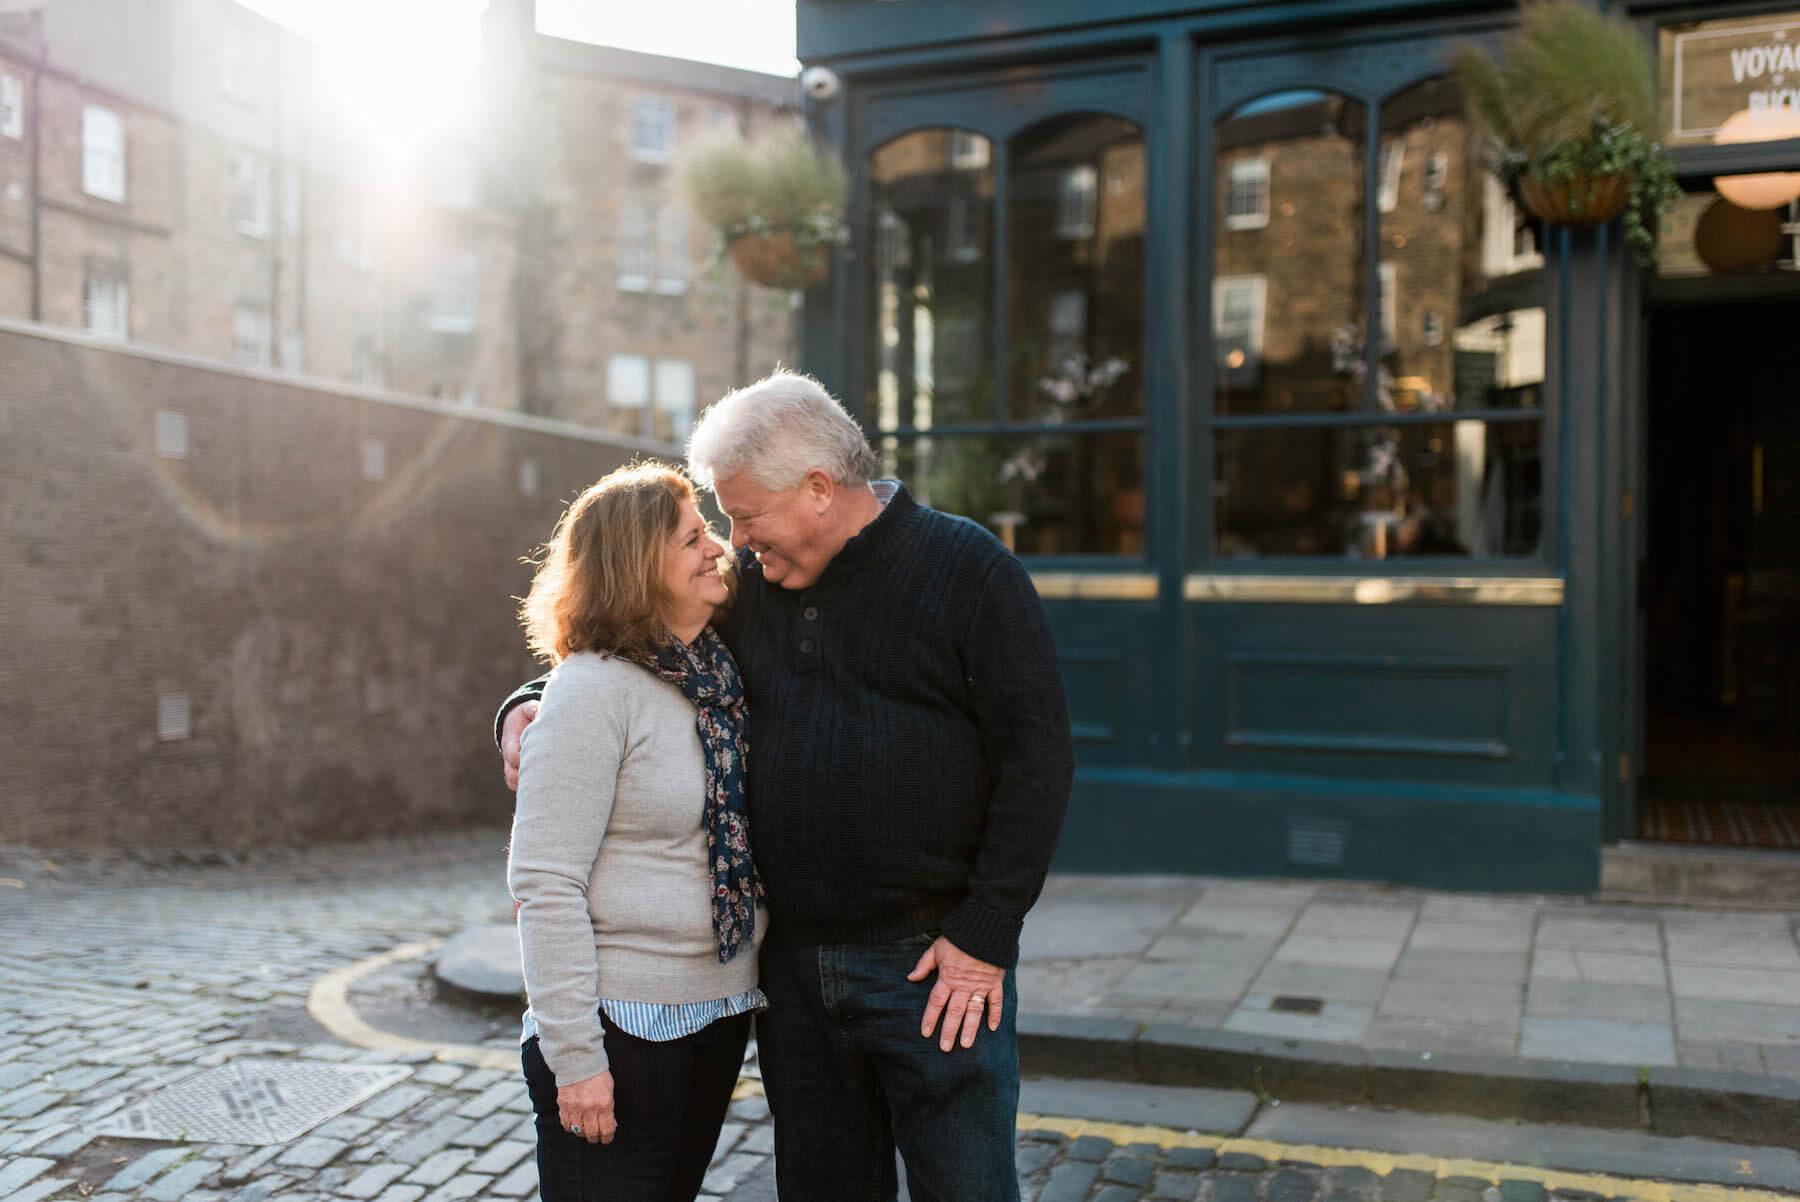 couple holding each other in front of a pub in Edinburgh, Scotland